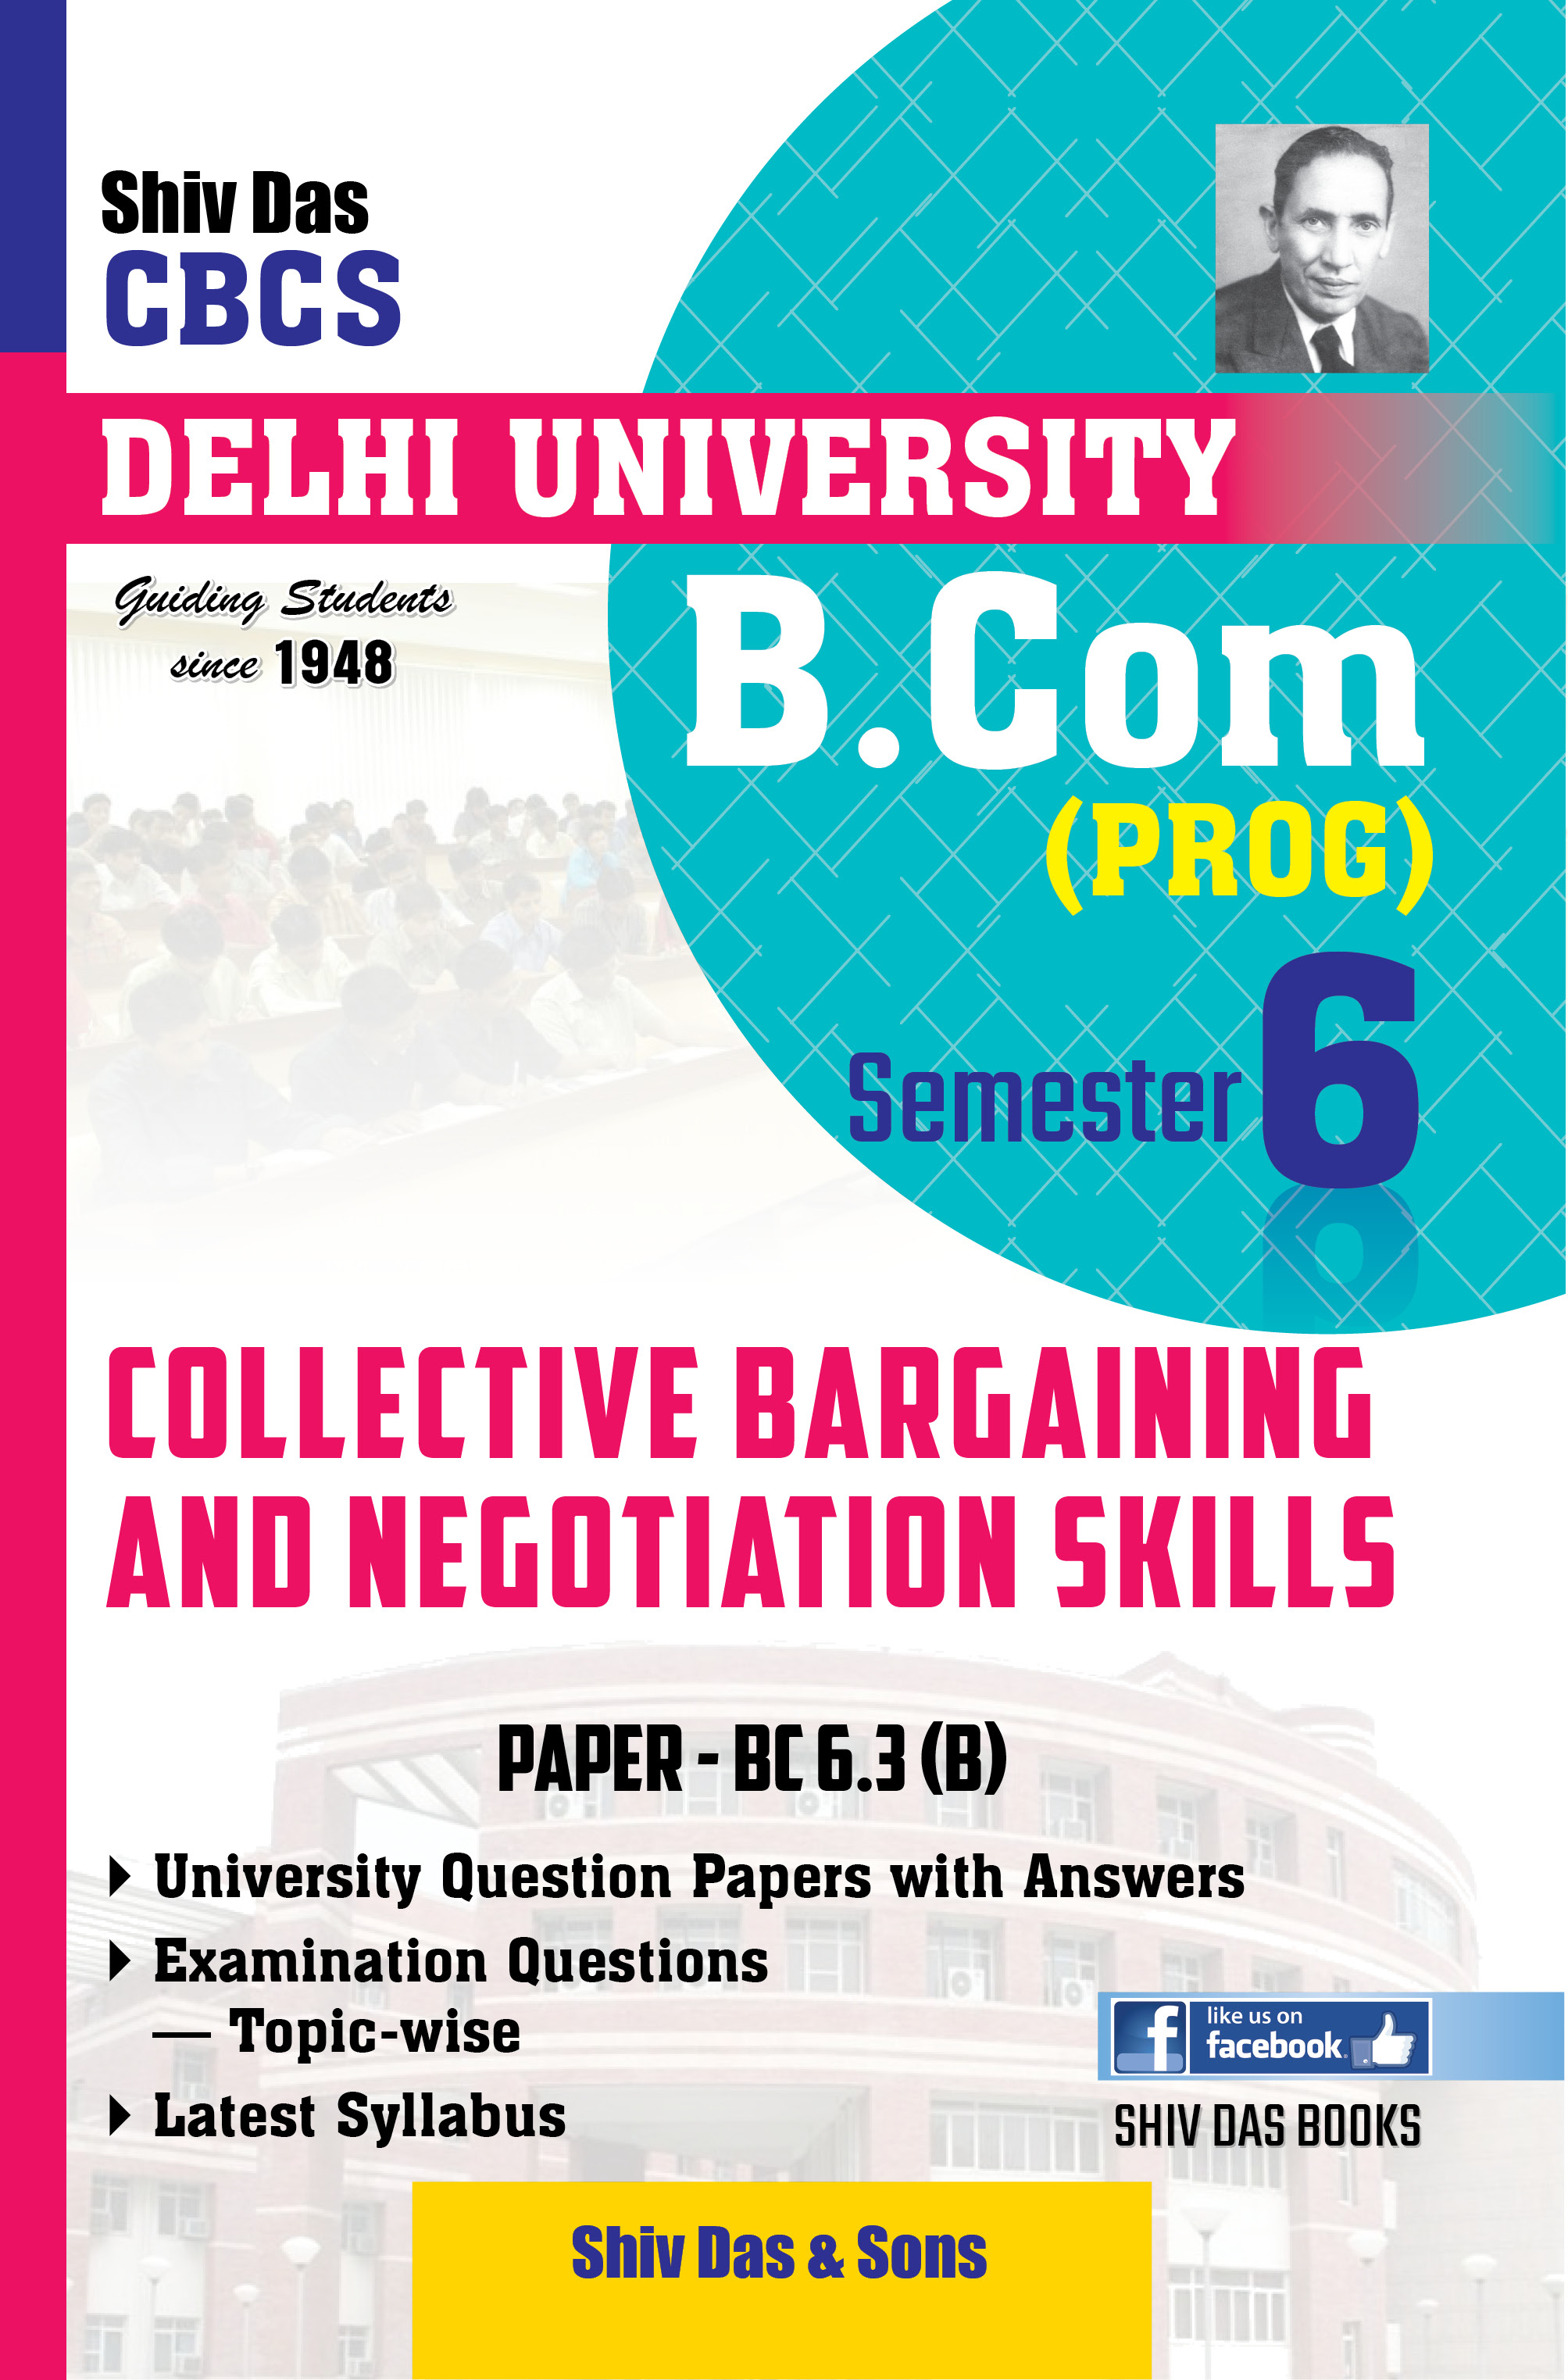 Collective Bargaining and Negotiation Skills for B Com Prog Semester 6 for Delhi University by Shiv Das